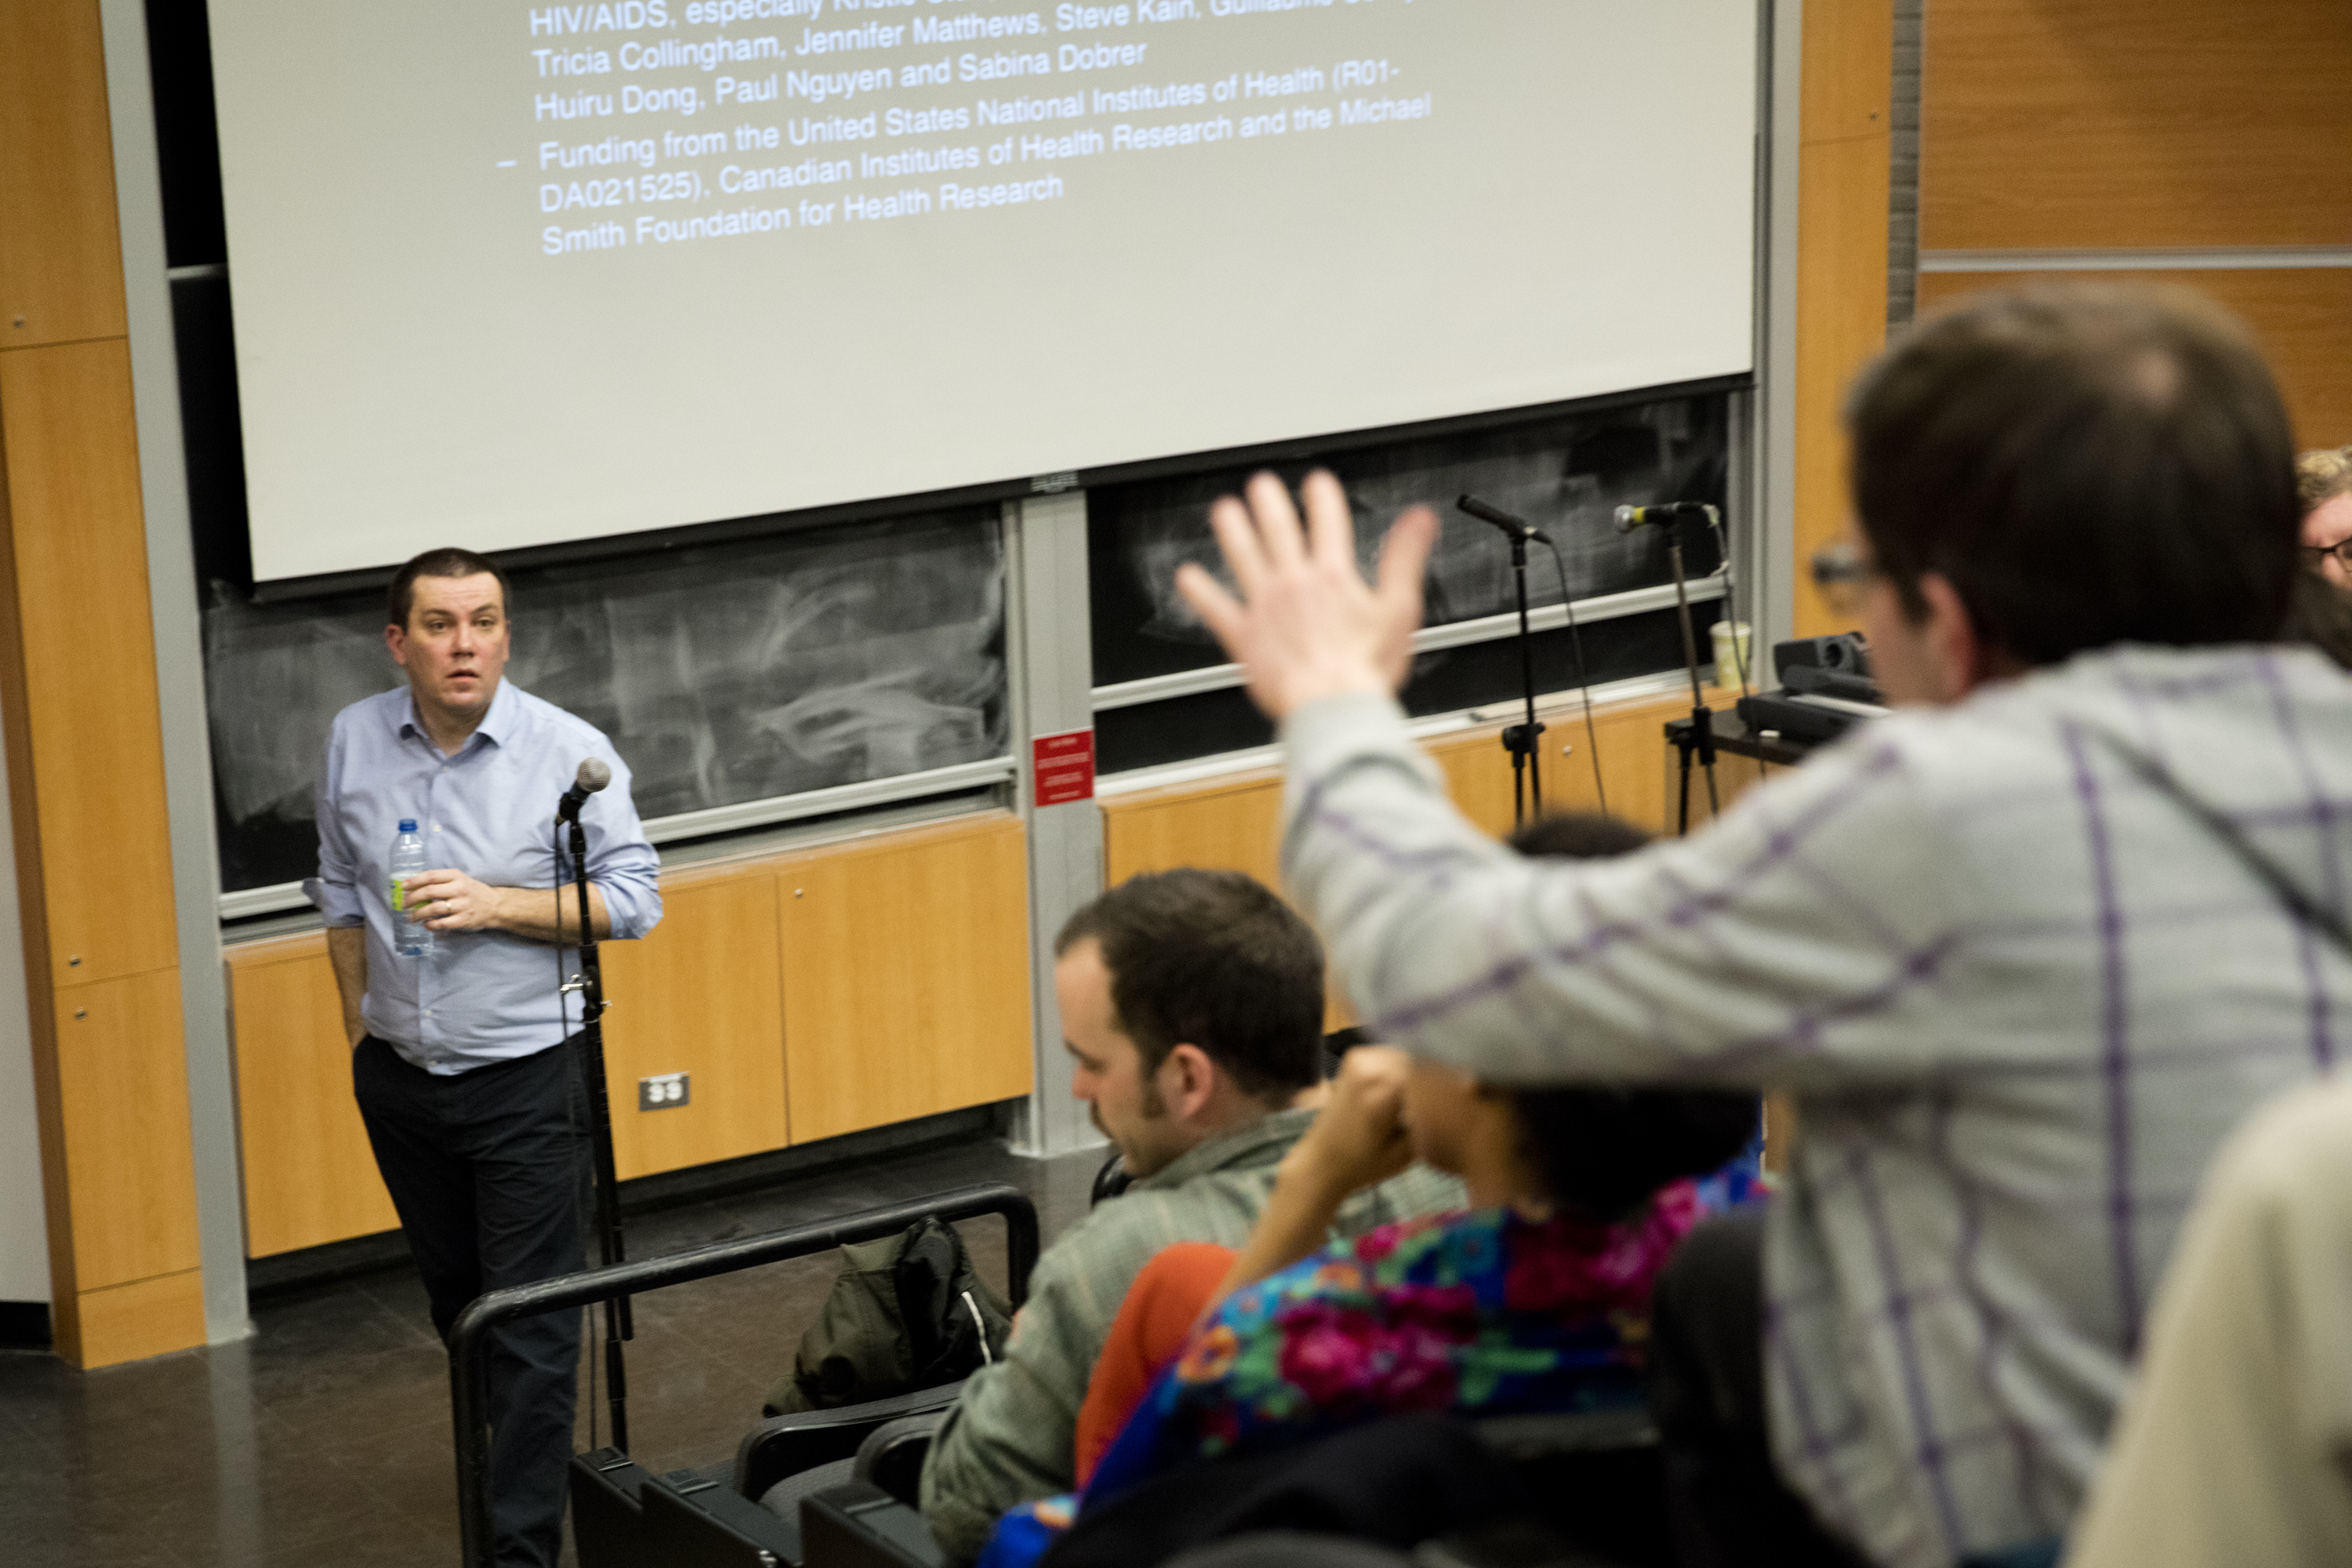 M.J. Milloy discusses ending HIV in the Leacock building at McGill University. Photo by Marie-Pierre Savard.